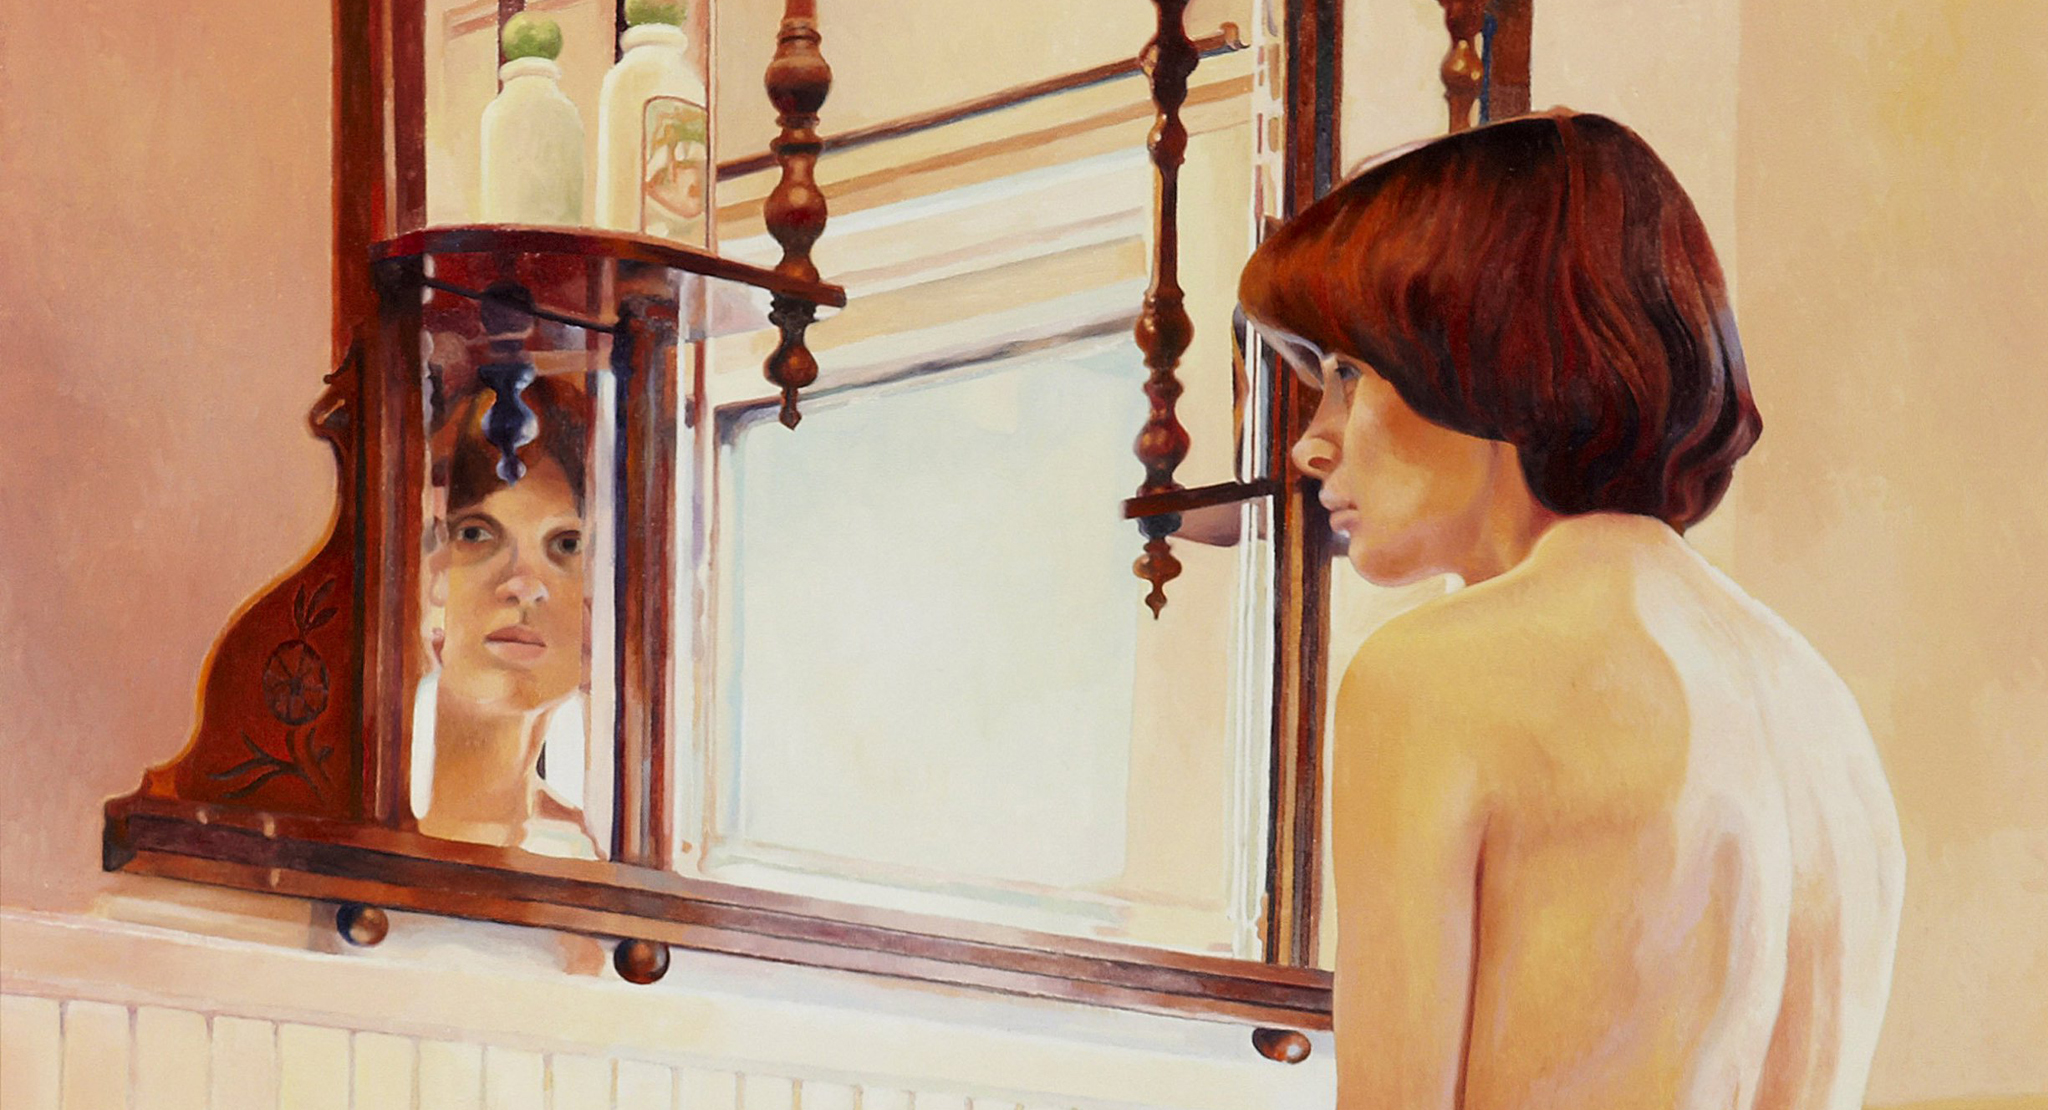 Collection Showcase: Mary Pratt's In The Bathroom Mirror